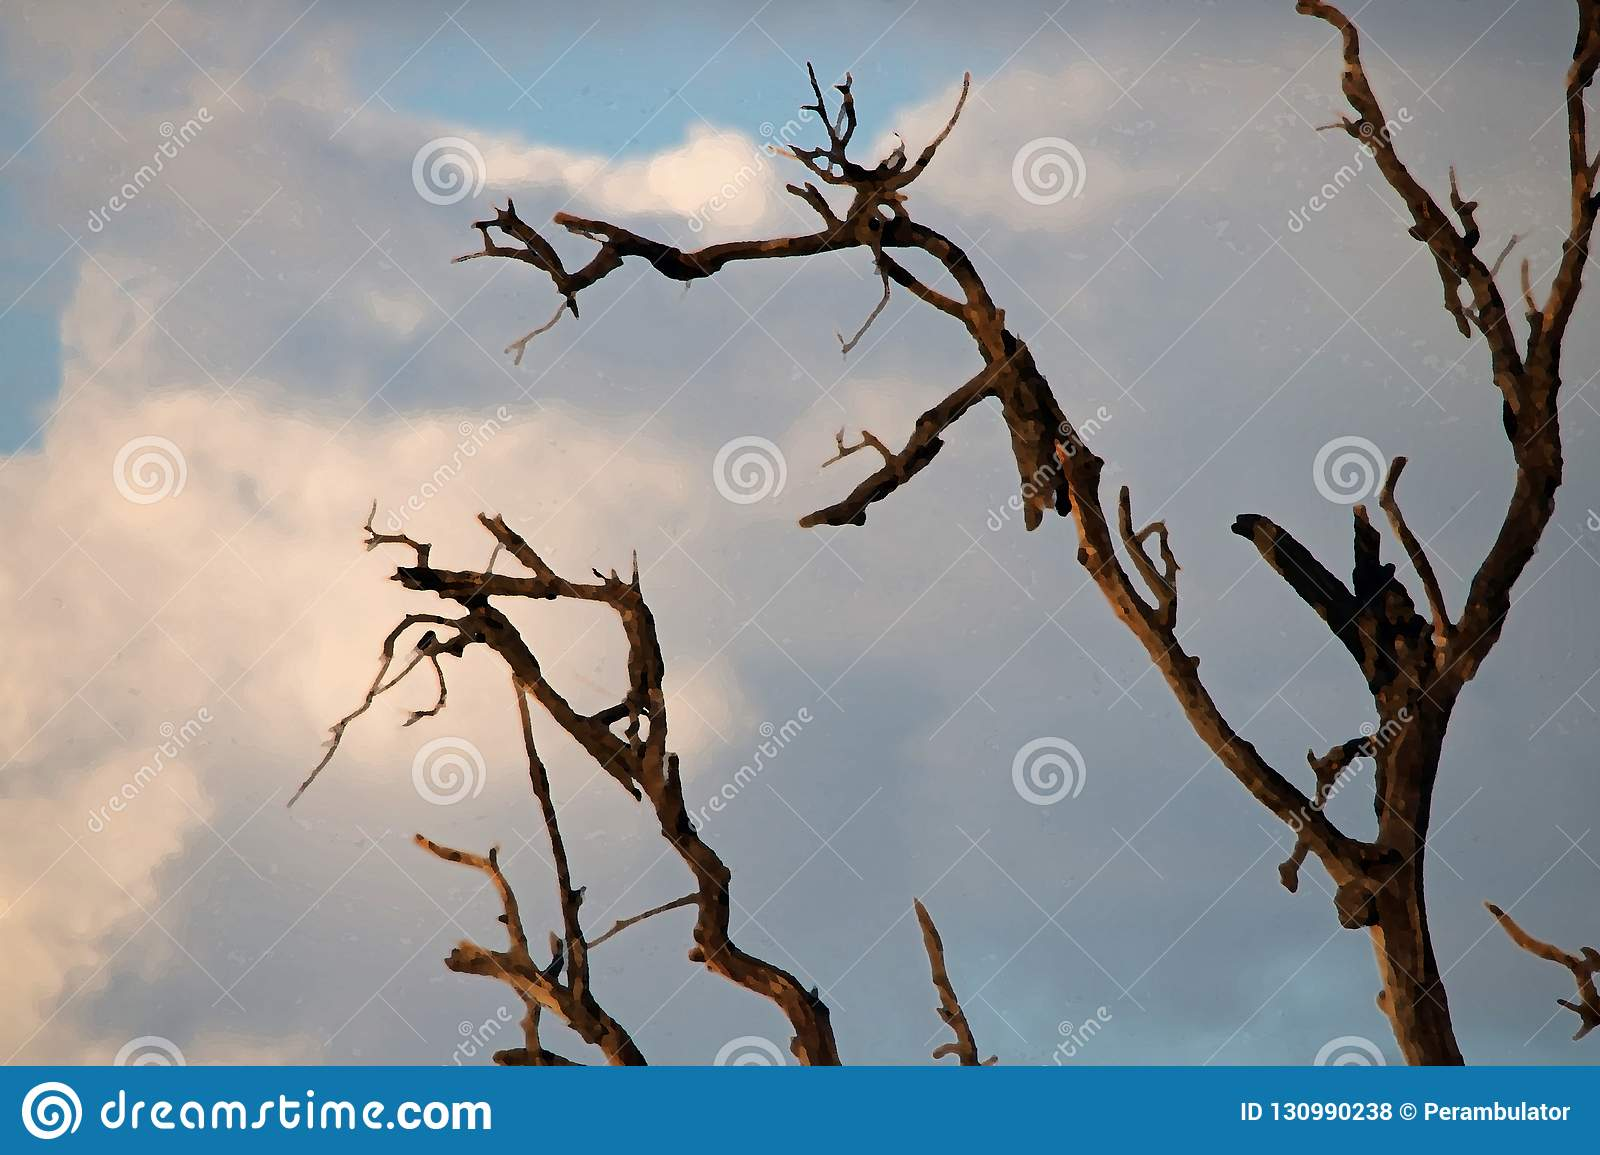 ARTISTIC EFFECT ADDED TO DRY BRANCHES